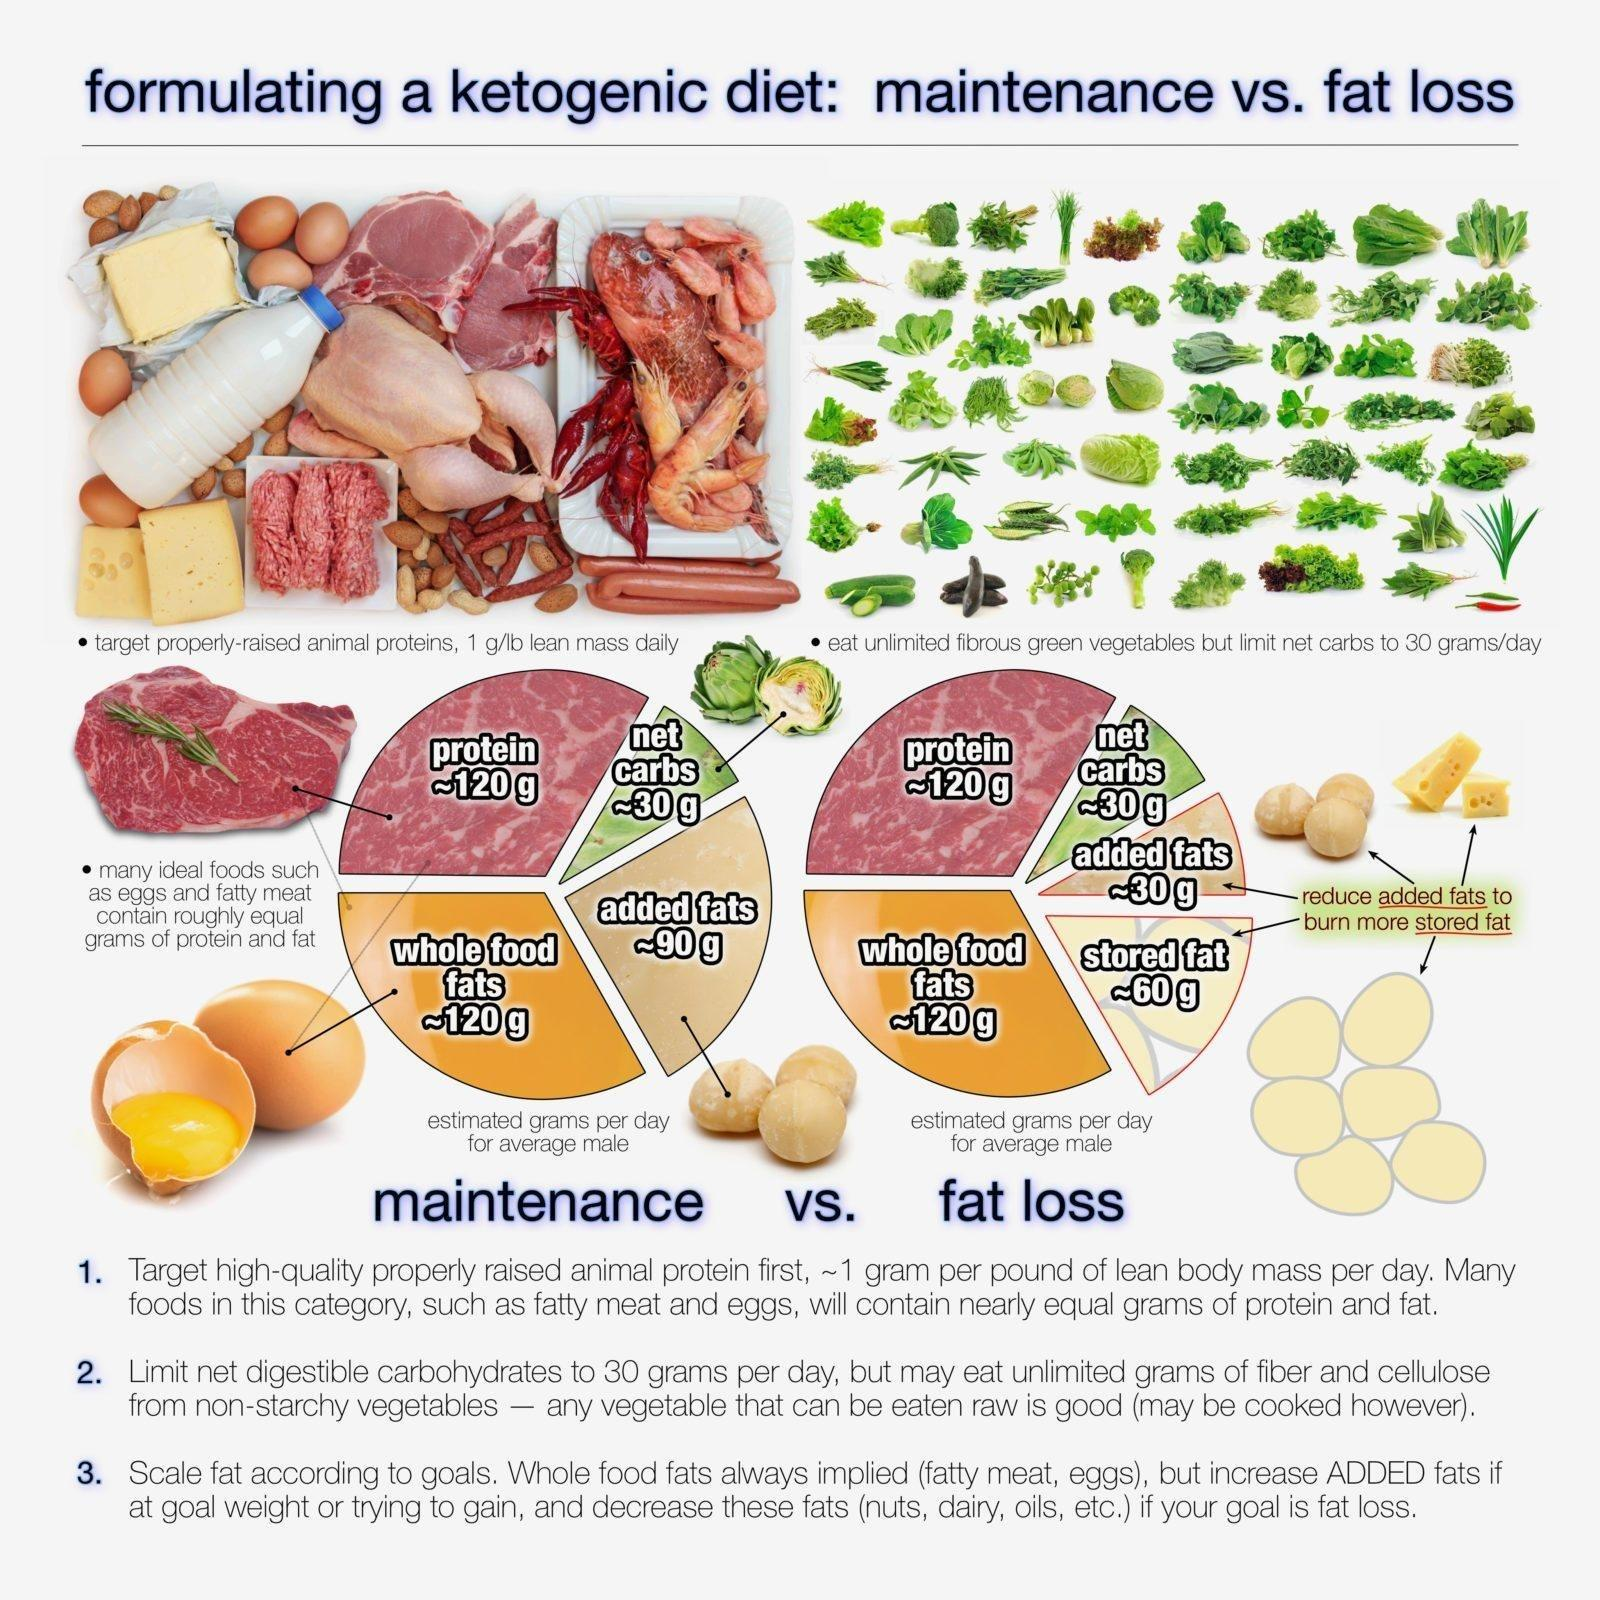 How Much Fat Should You Eat On A Ketogenic Diet?